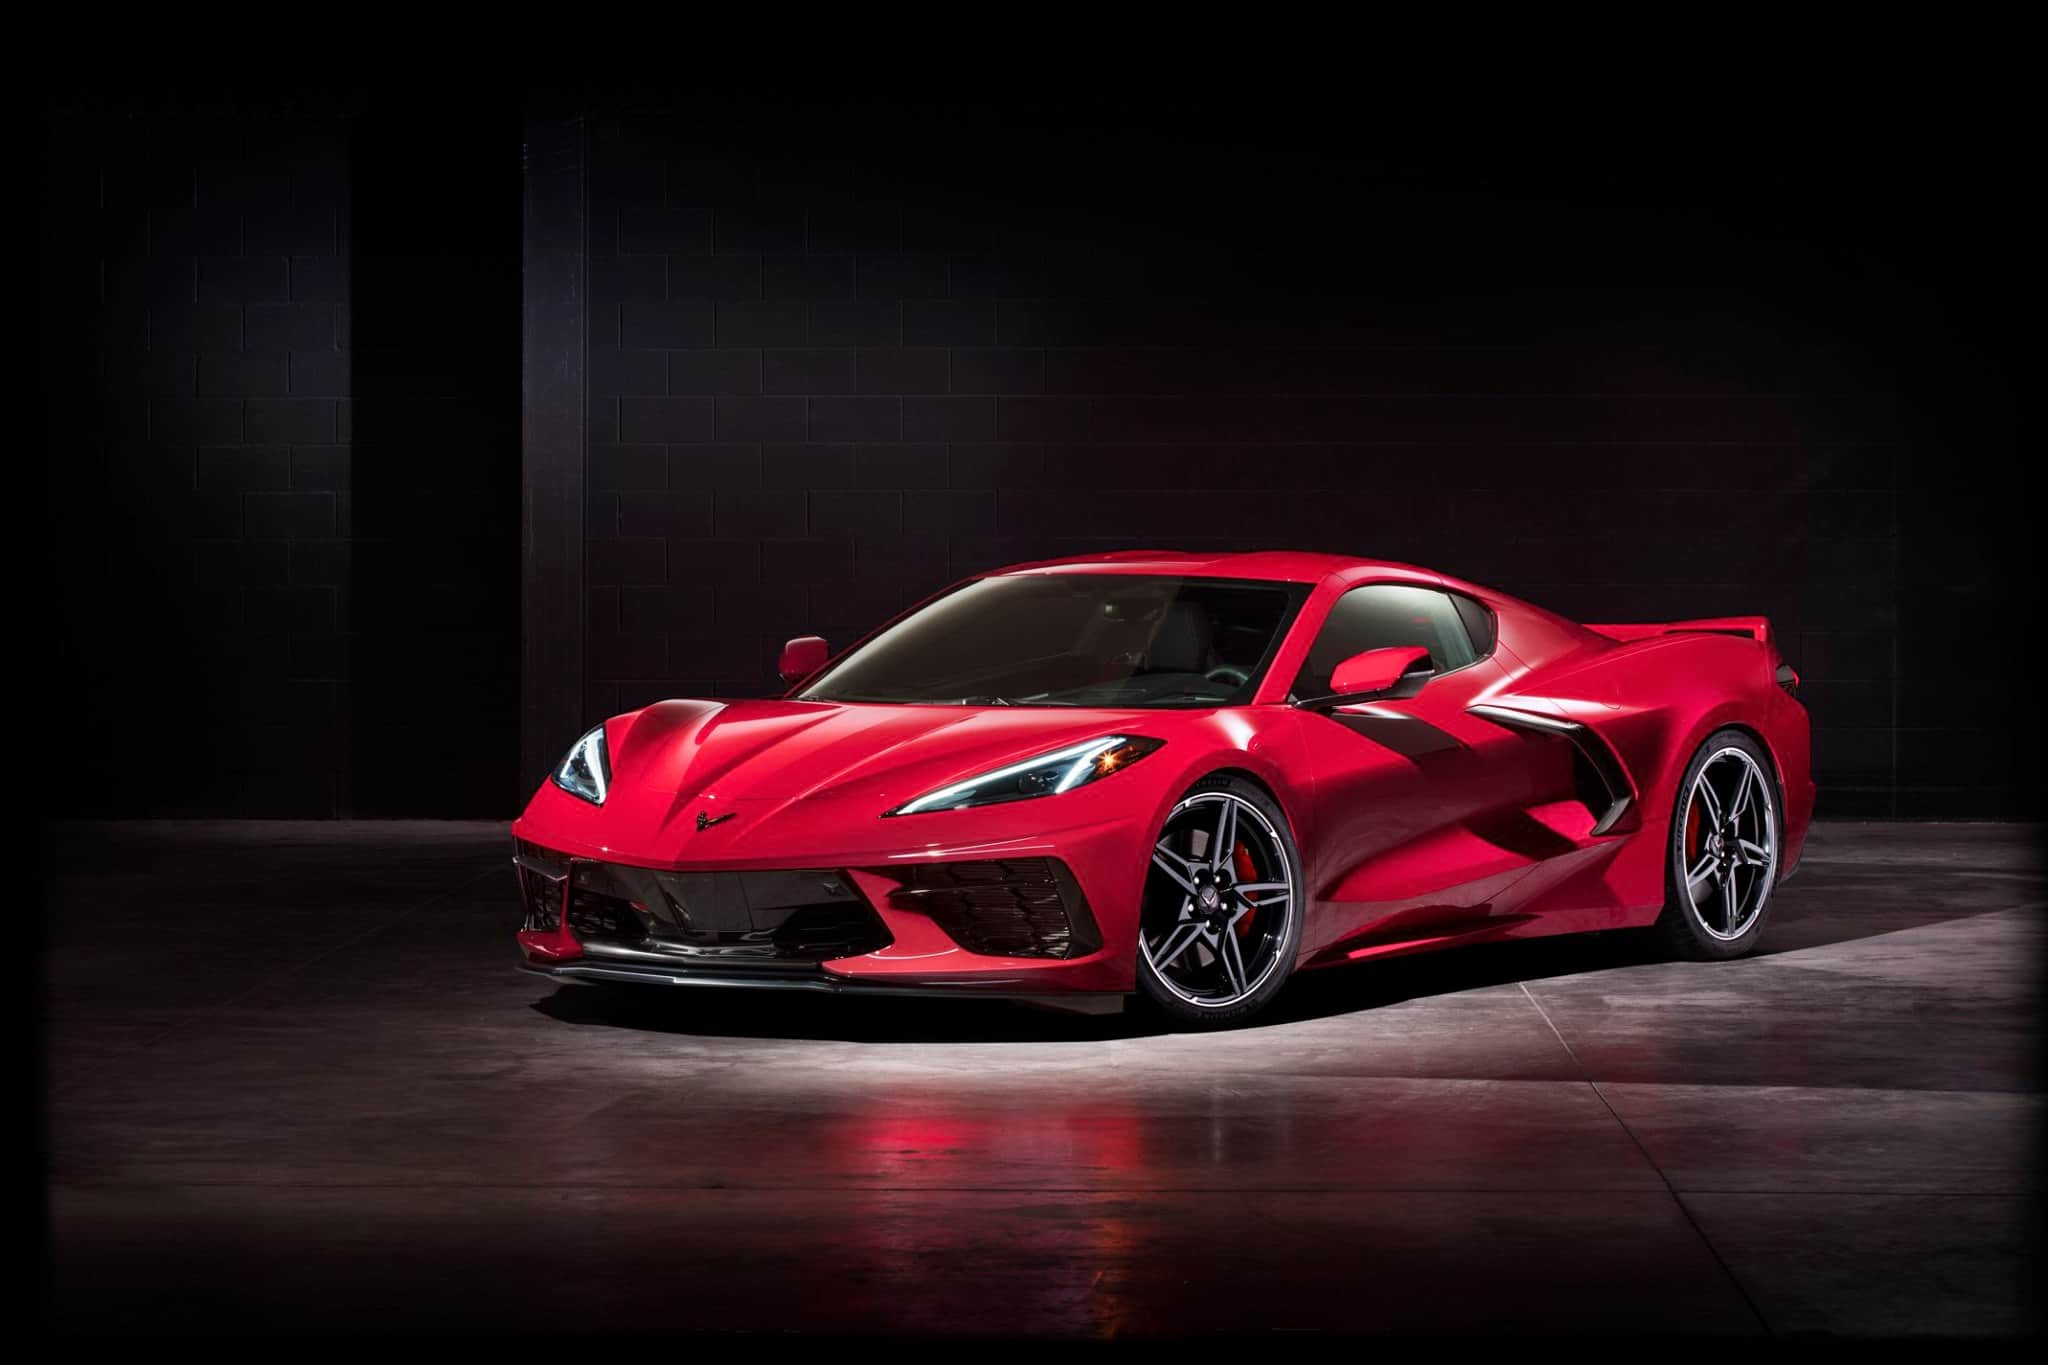 ¿Por qué es de mayor importancia la llegada de Corvette Stingray 2020?